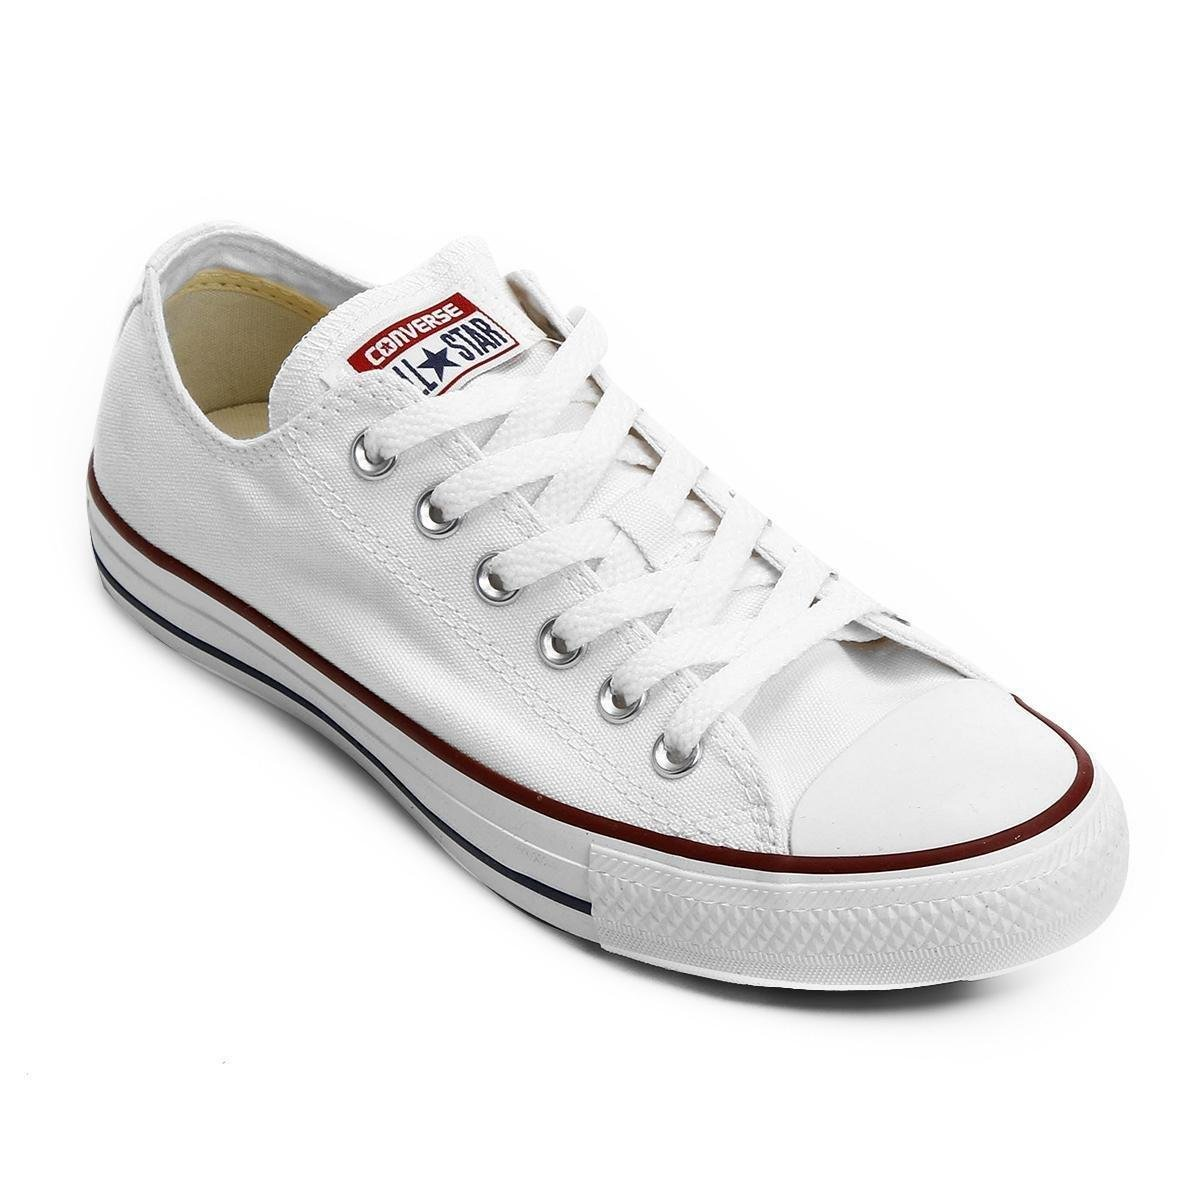 c514e3bf1cef8 Tênis Converse All Star Ct As Core Ox